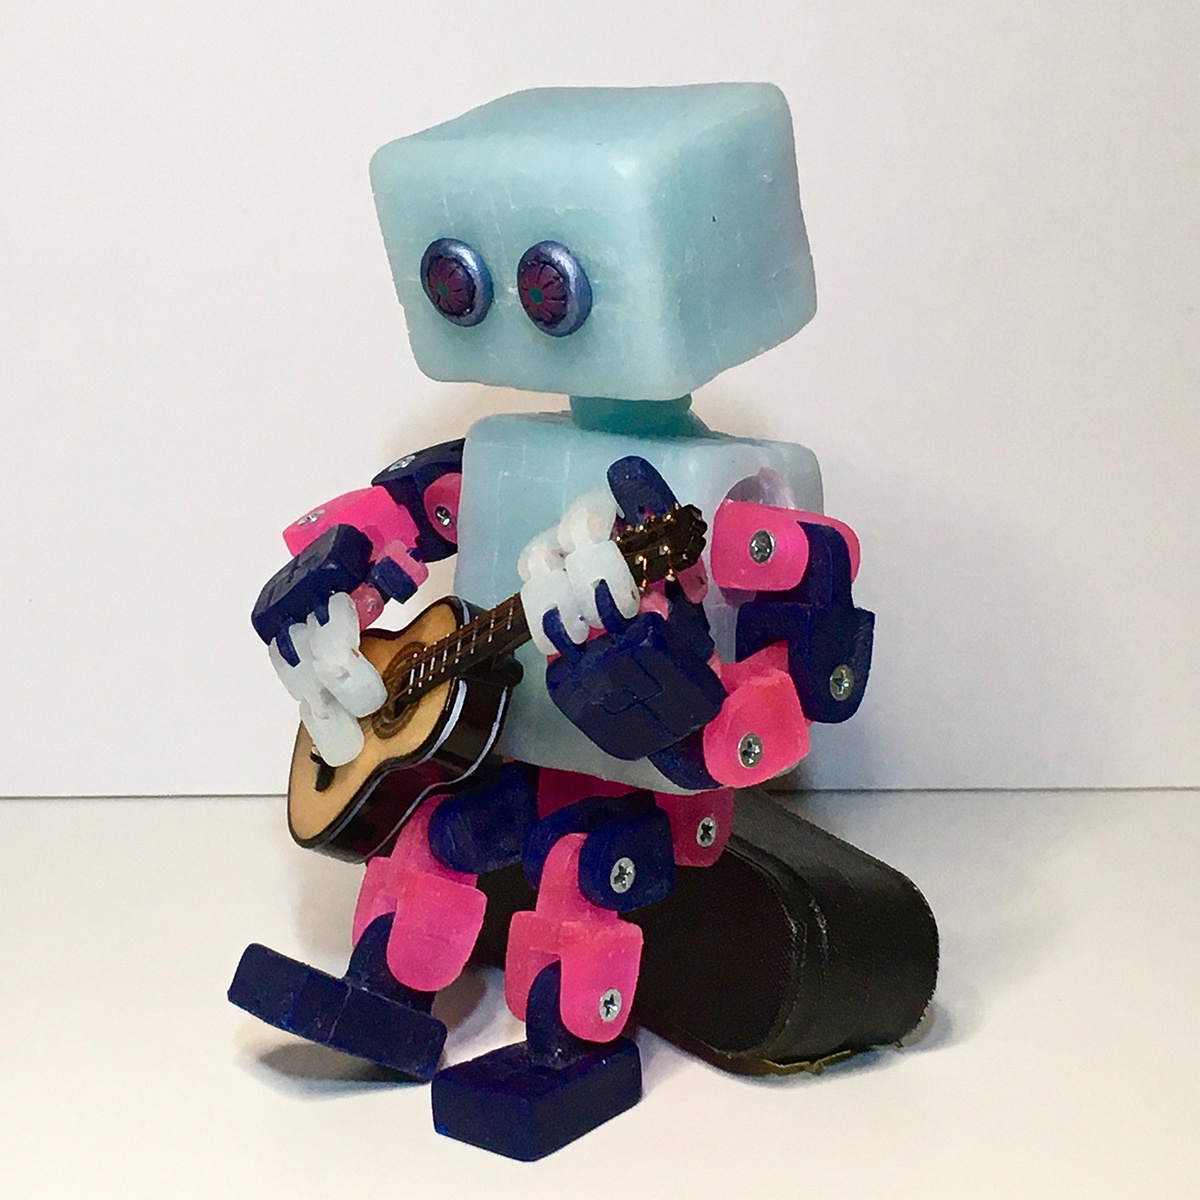 A toy robot sculpture plays a guitar.